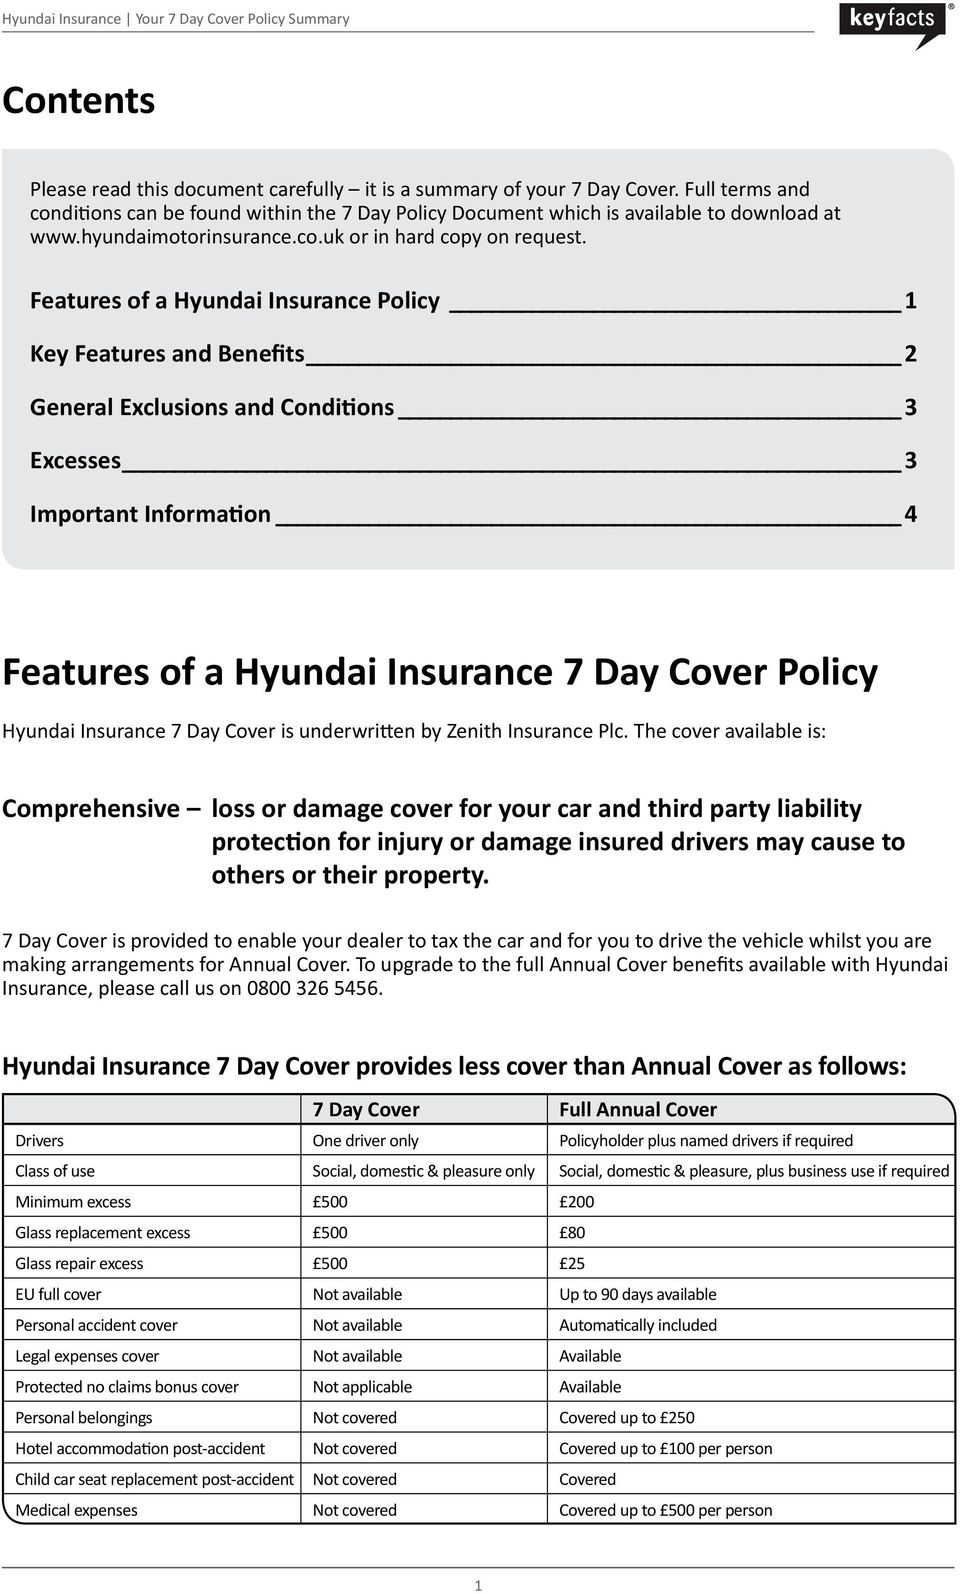 Features of a Hyundai Insurance Policy 1 Key Features and Benefits 2 General Exclusions and Conditions 3 Excesses 3 Important Information 4 Features of a Hyundai Insurance 7 Day Cover Policy Hyundai